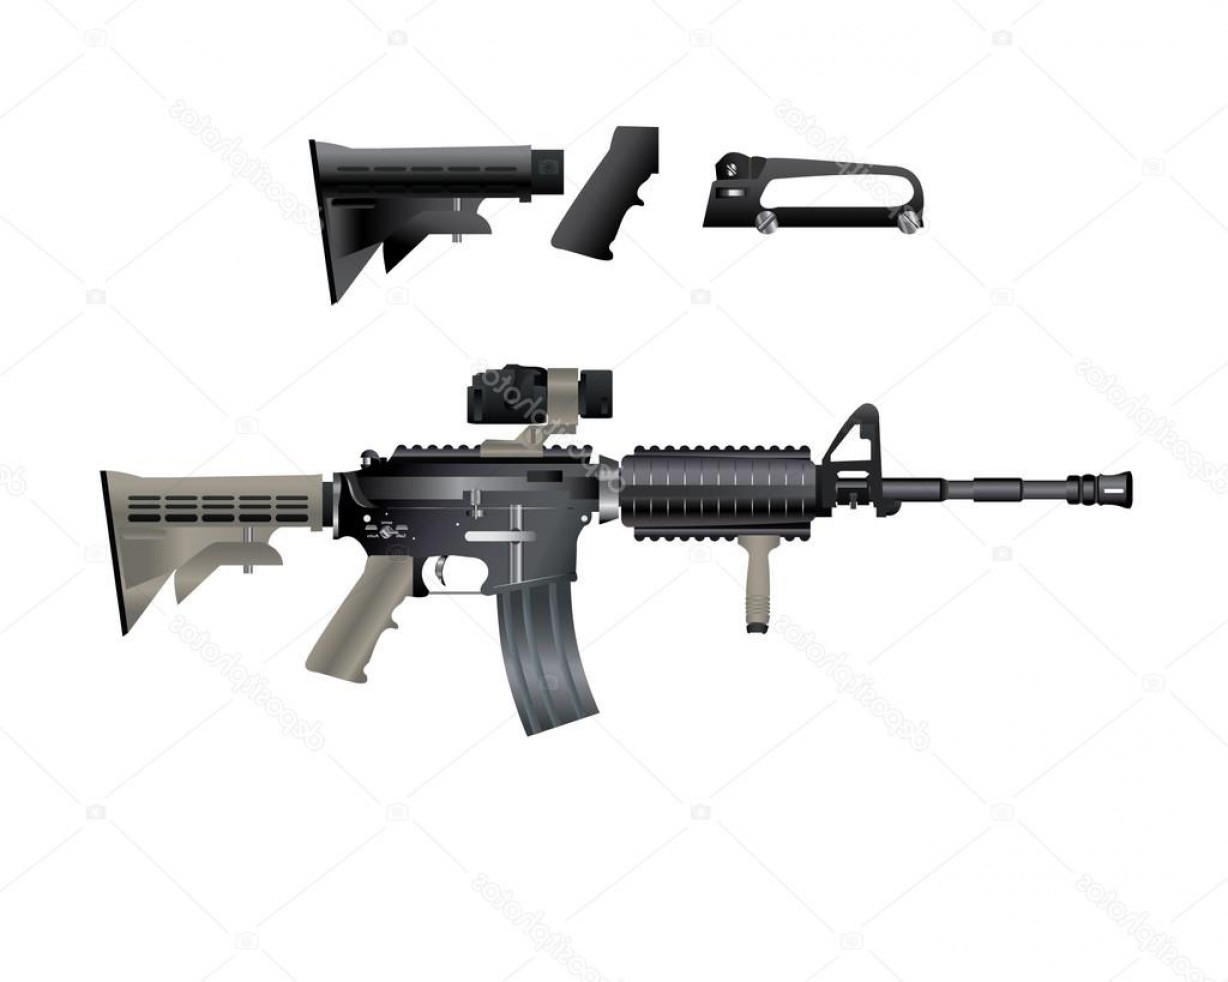 M4 Gun Vector: Stock Illustration M Carbine Is Armed With